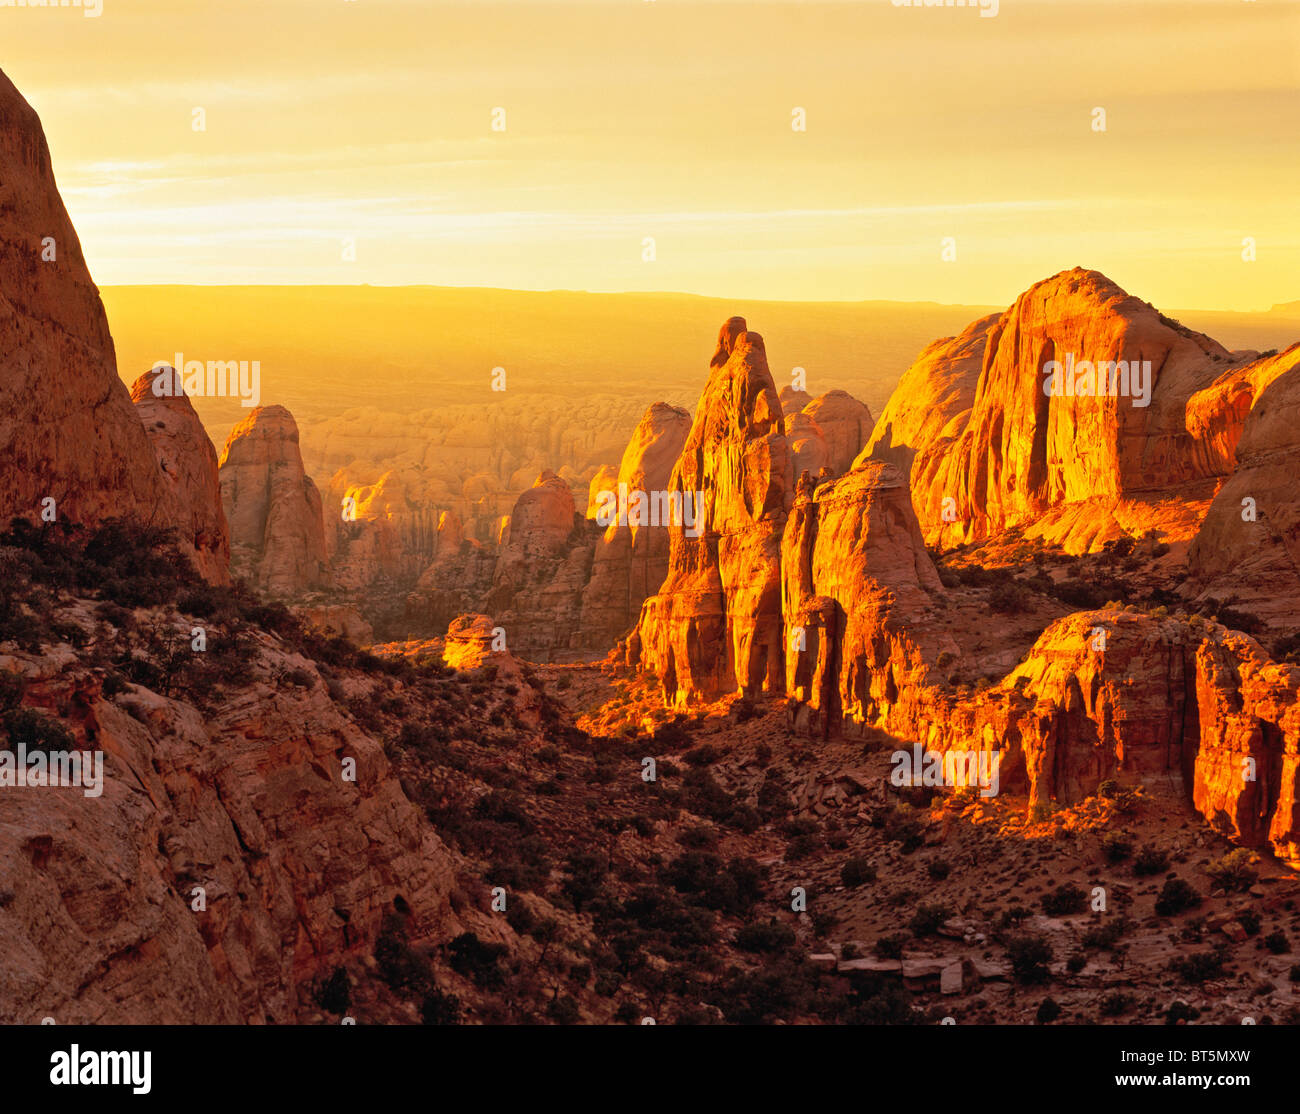 Sunset in Behind the Rocks, Wilderness Study Area, Utah - Stock Image